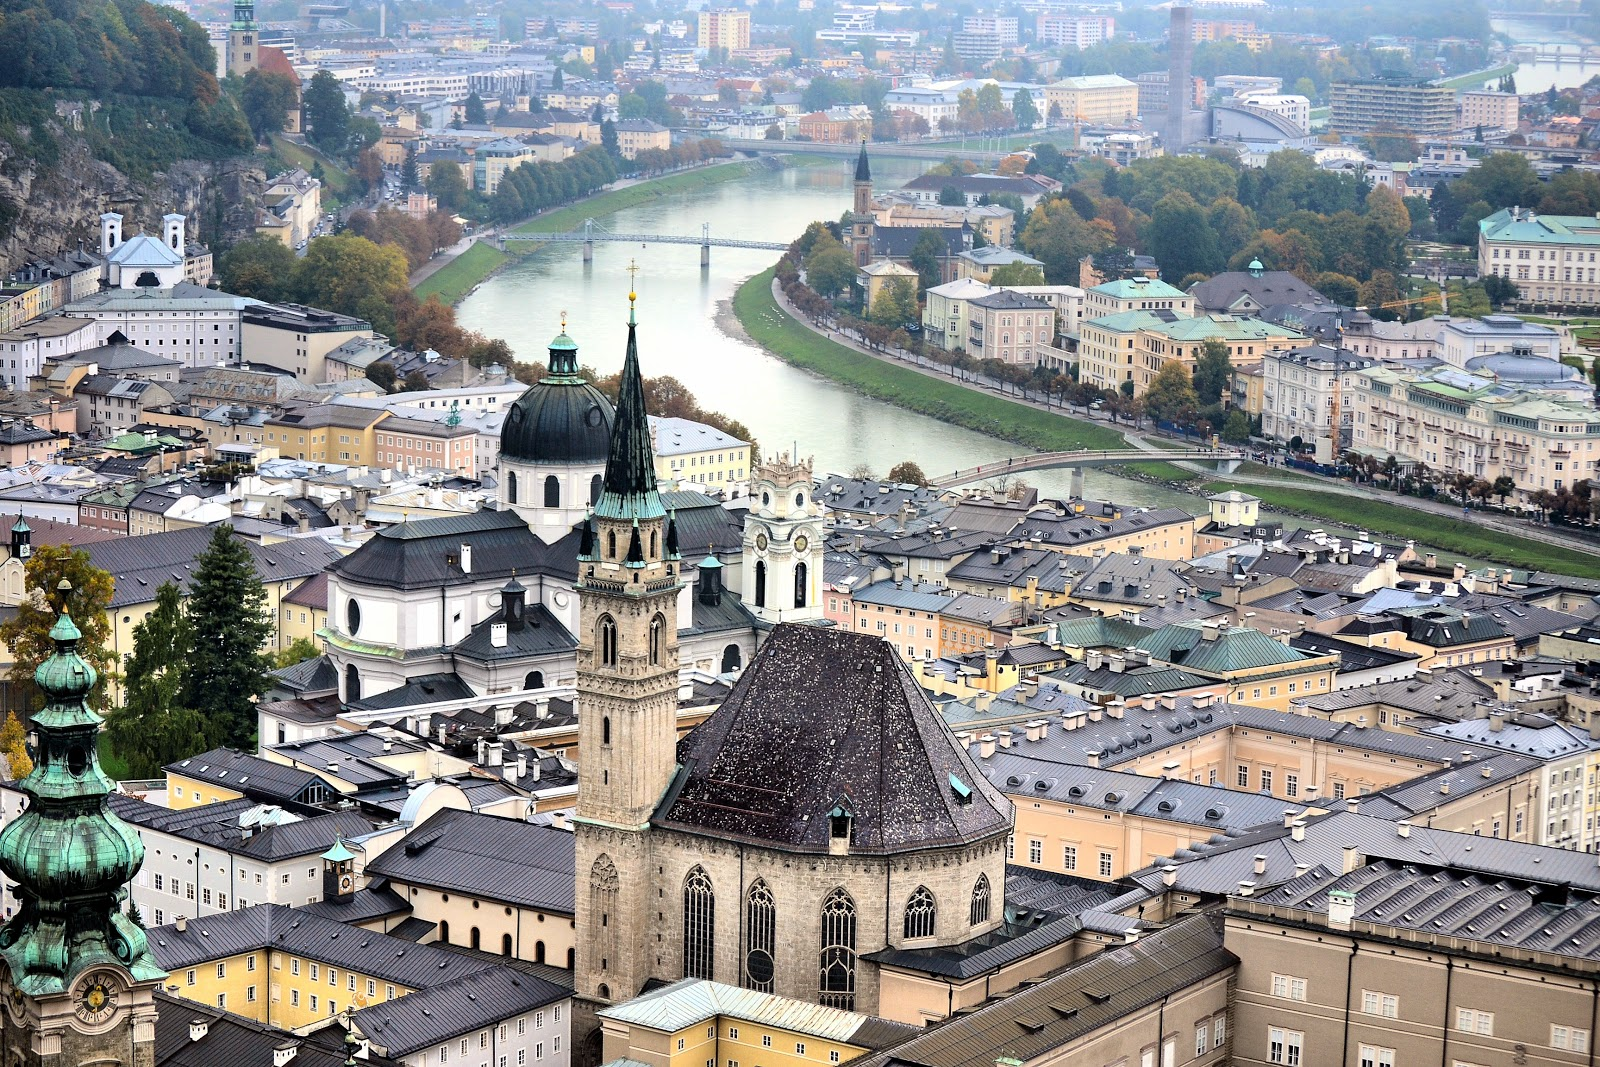 Salzburg, Austria, as seen from the Hohensalzburg Fortress. Click on any photo to enlarge.